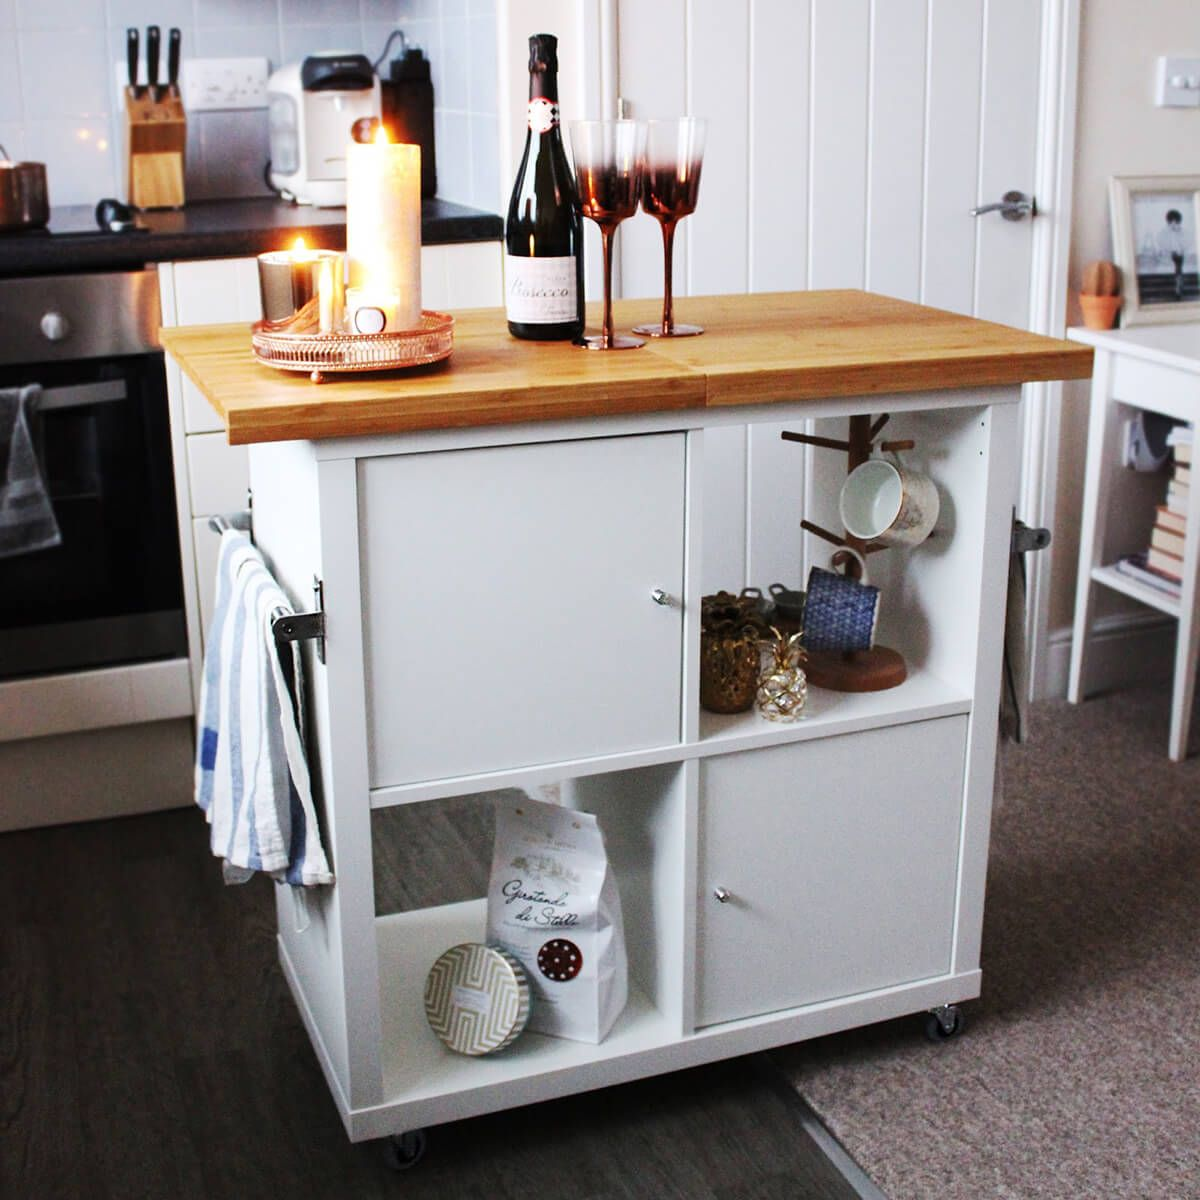 Diy Ikea Kücheninsel 50 Genius Ikea Hacks That Are Cheap Easy To Recreate Ikea